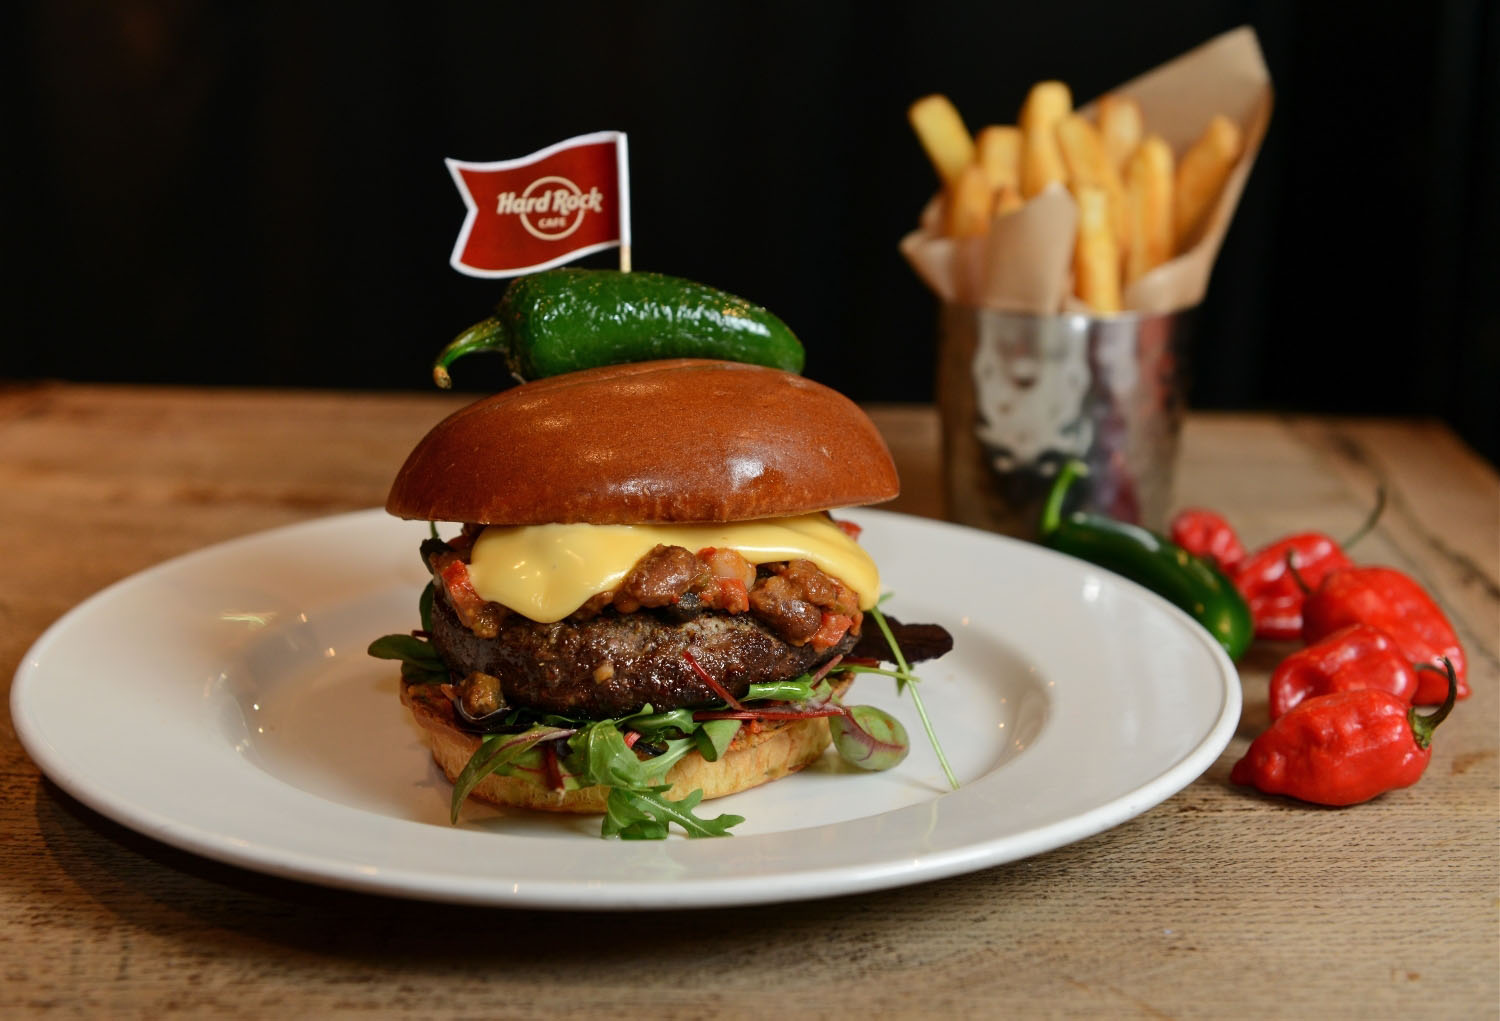 CHILLI MENU_HARD ROCK CAFE LISBOA_CHILLI BURGER